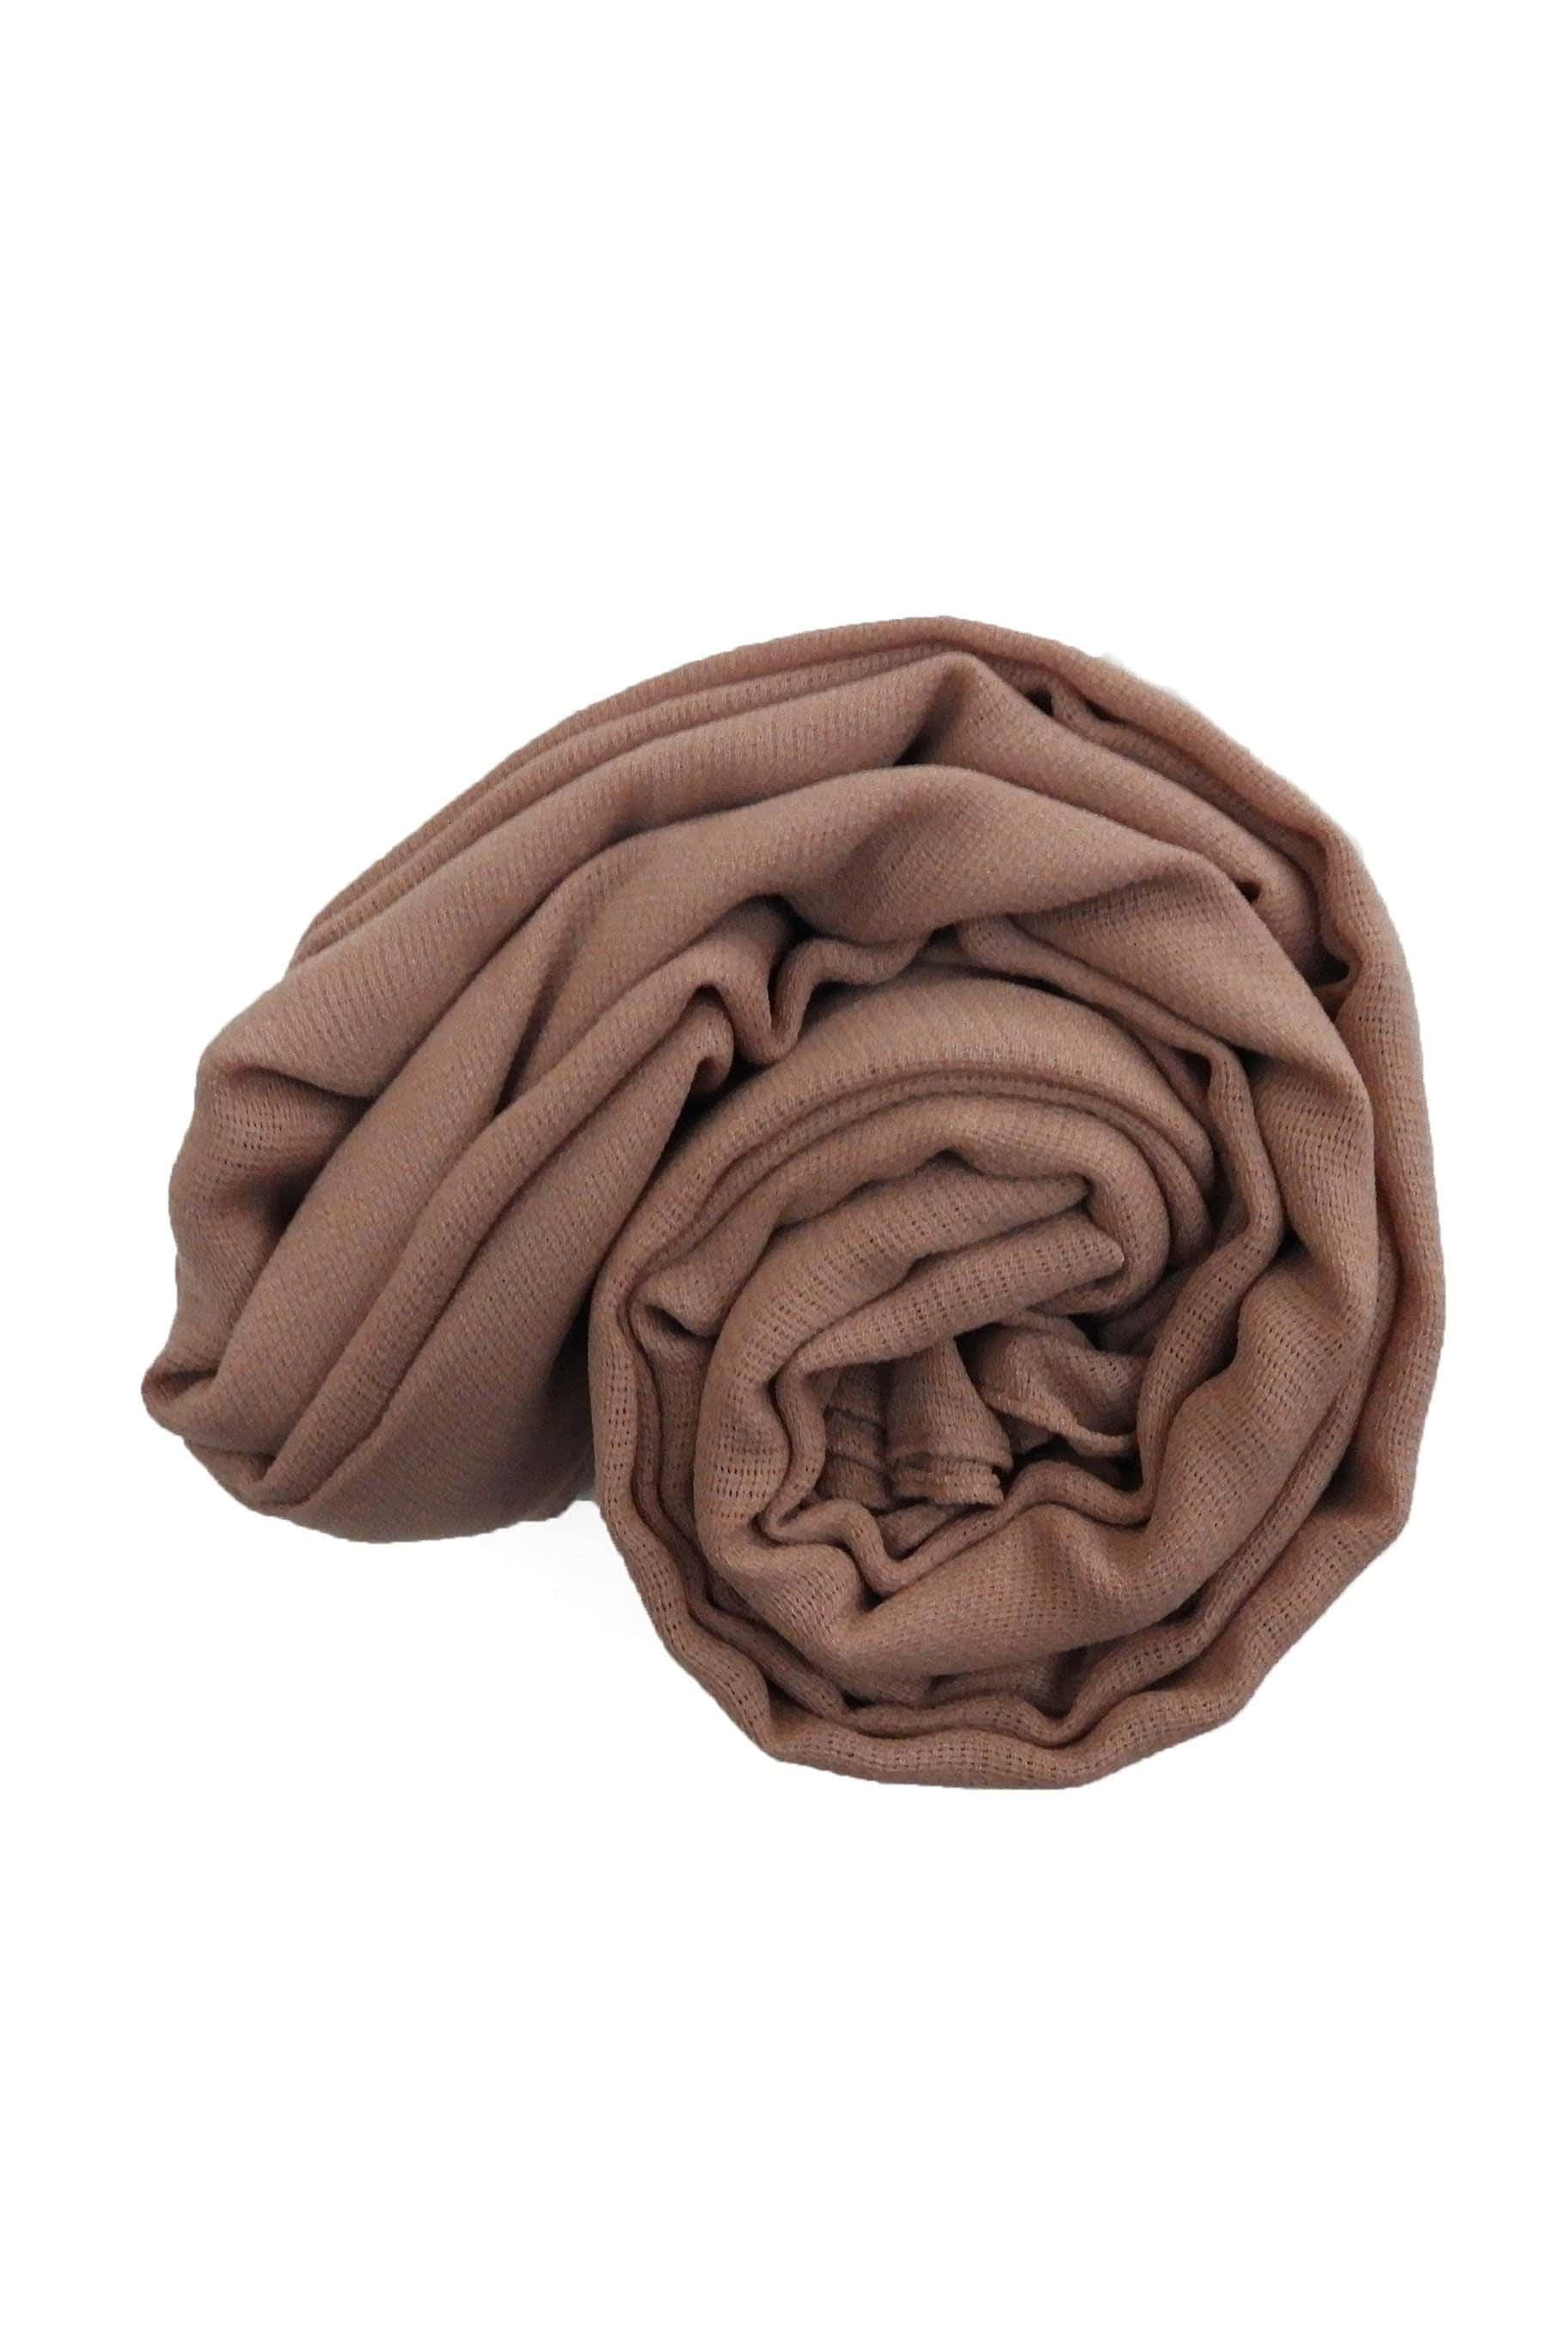 Natural Nude Jute Cotton - Jute-Cotton Hijab - The Modest Look